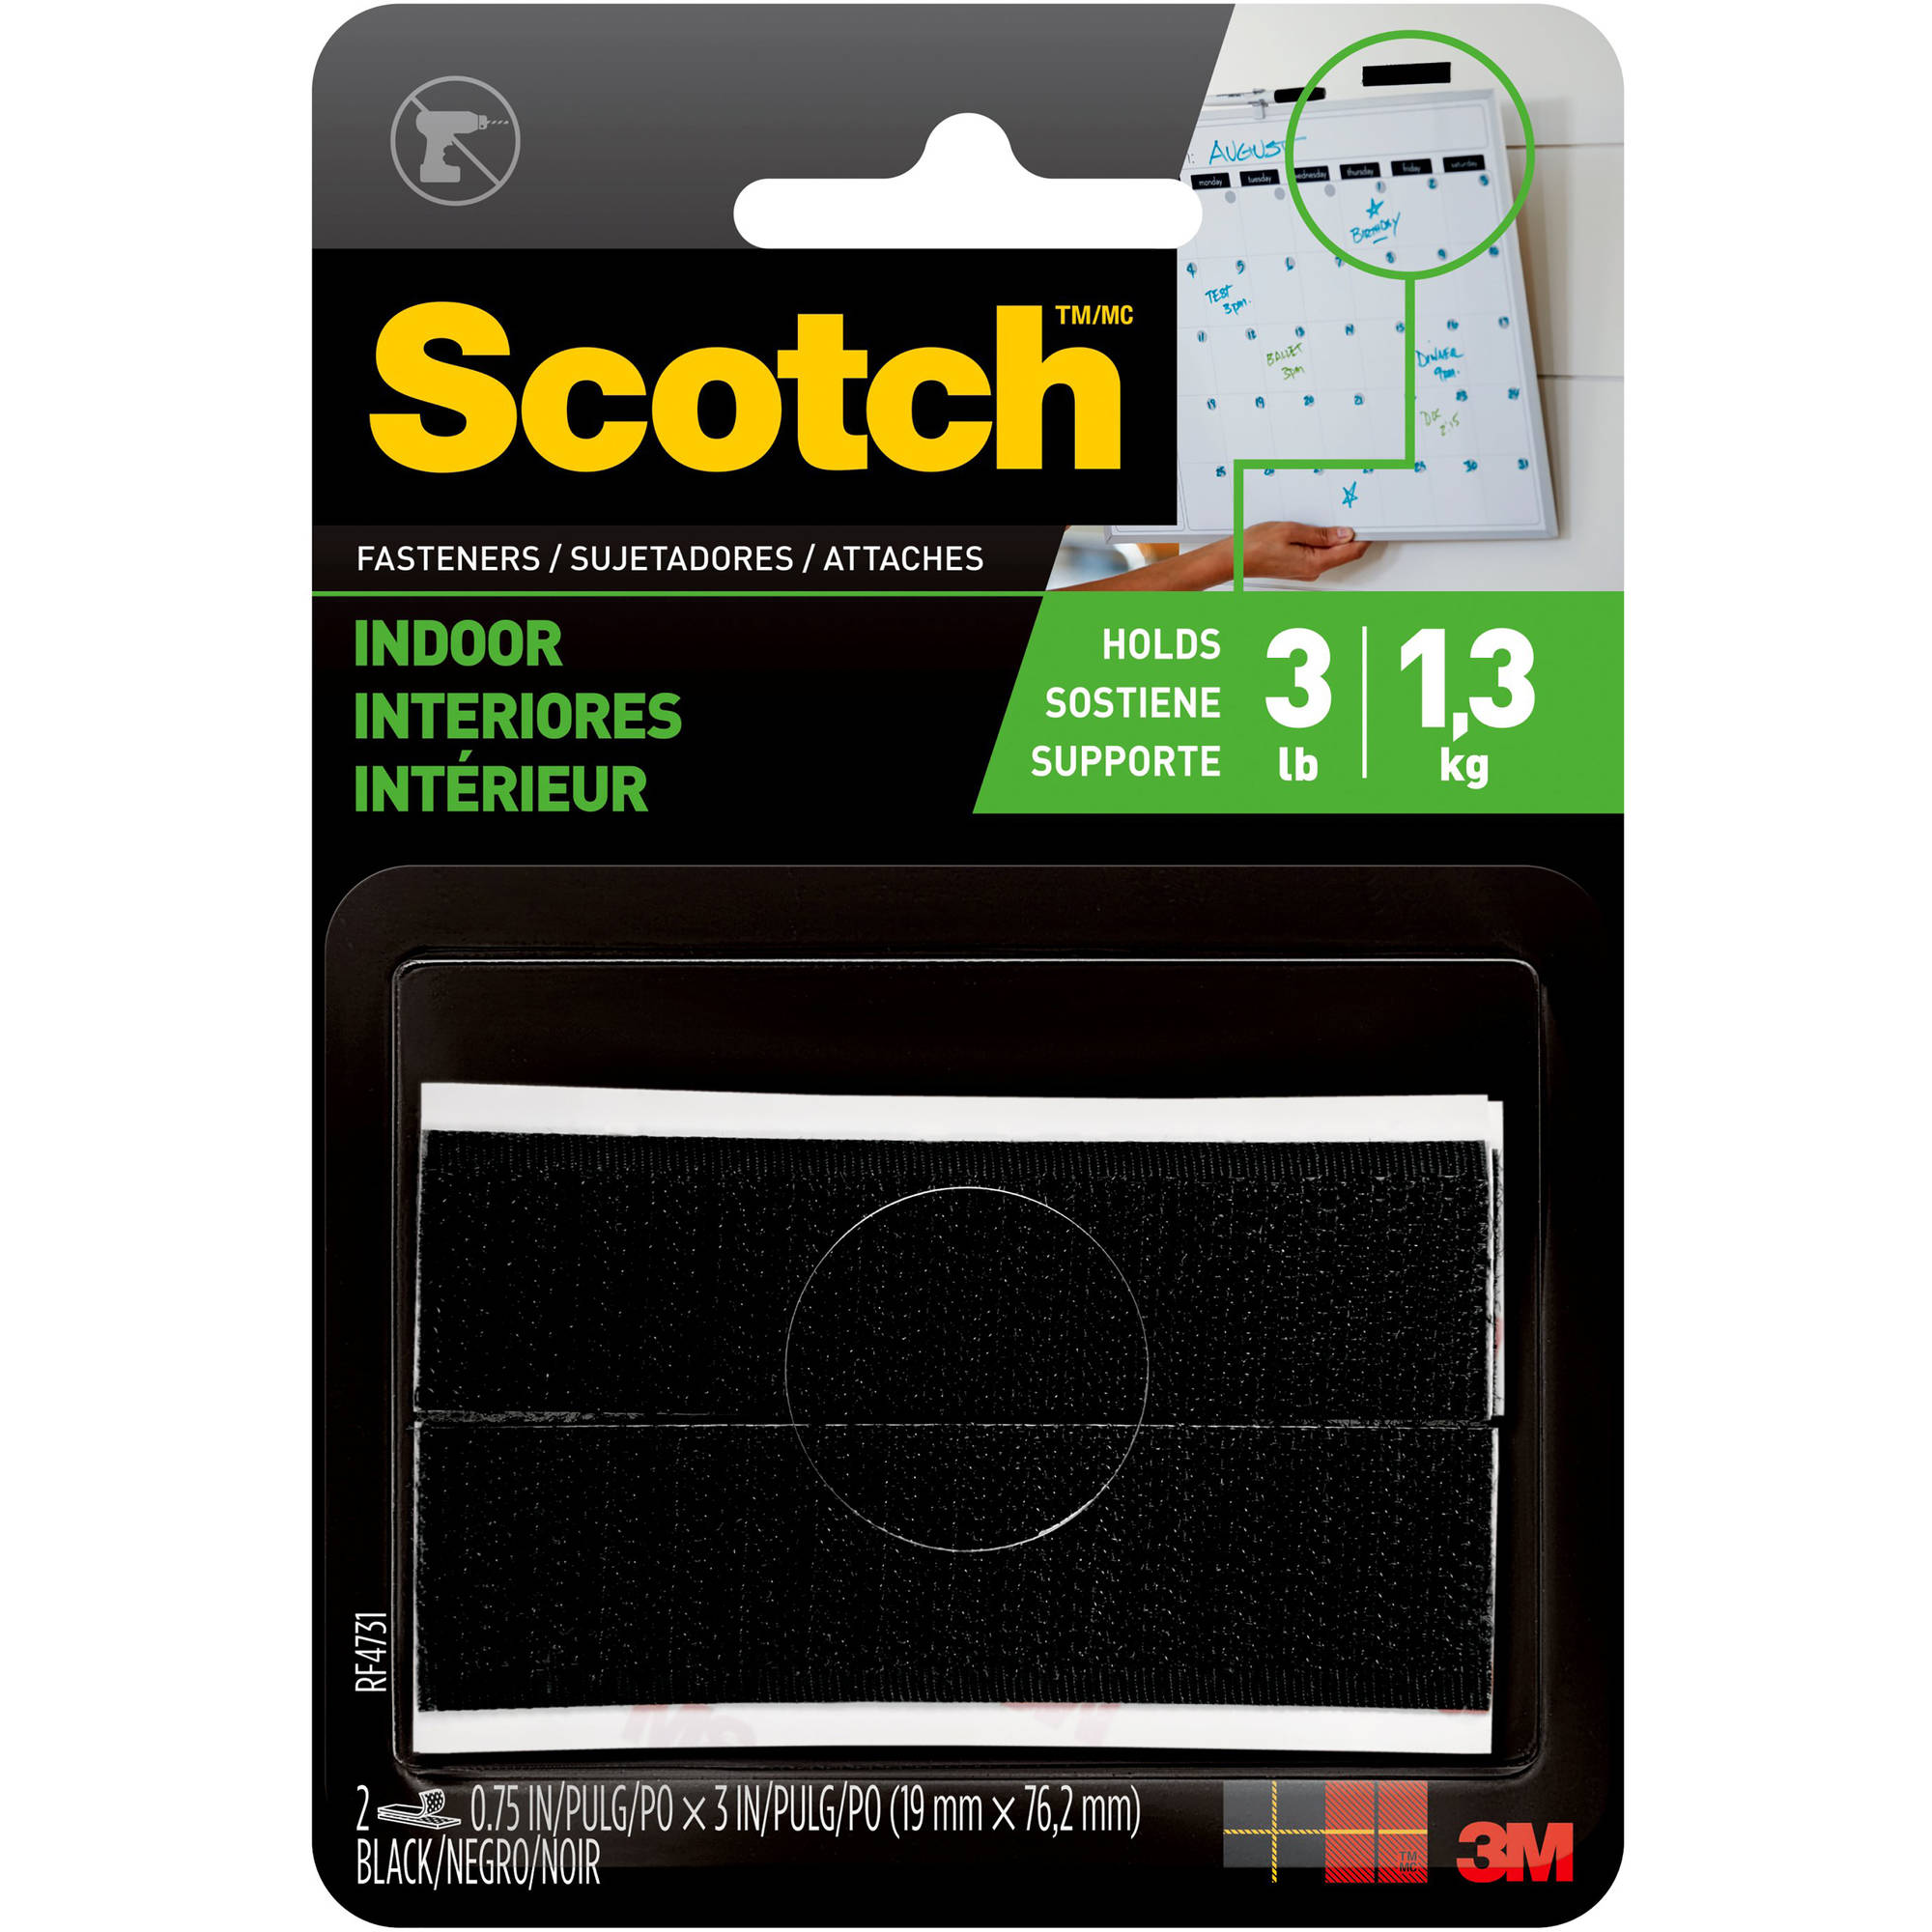 Scotch Indoor Fasteners, 3/4 in. x 3 in., Black, 2 Sets/Pack